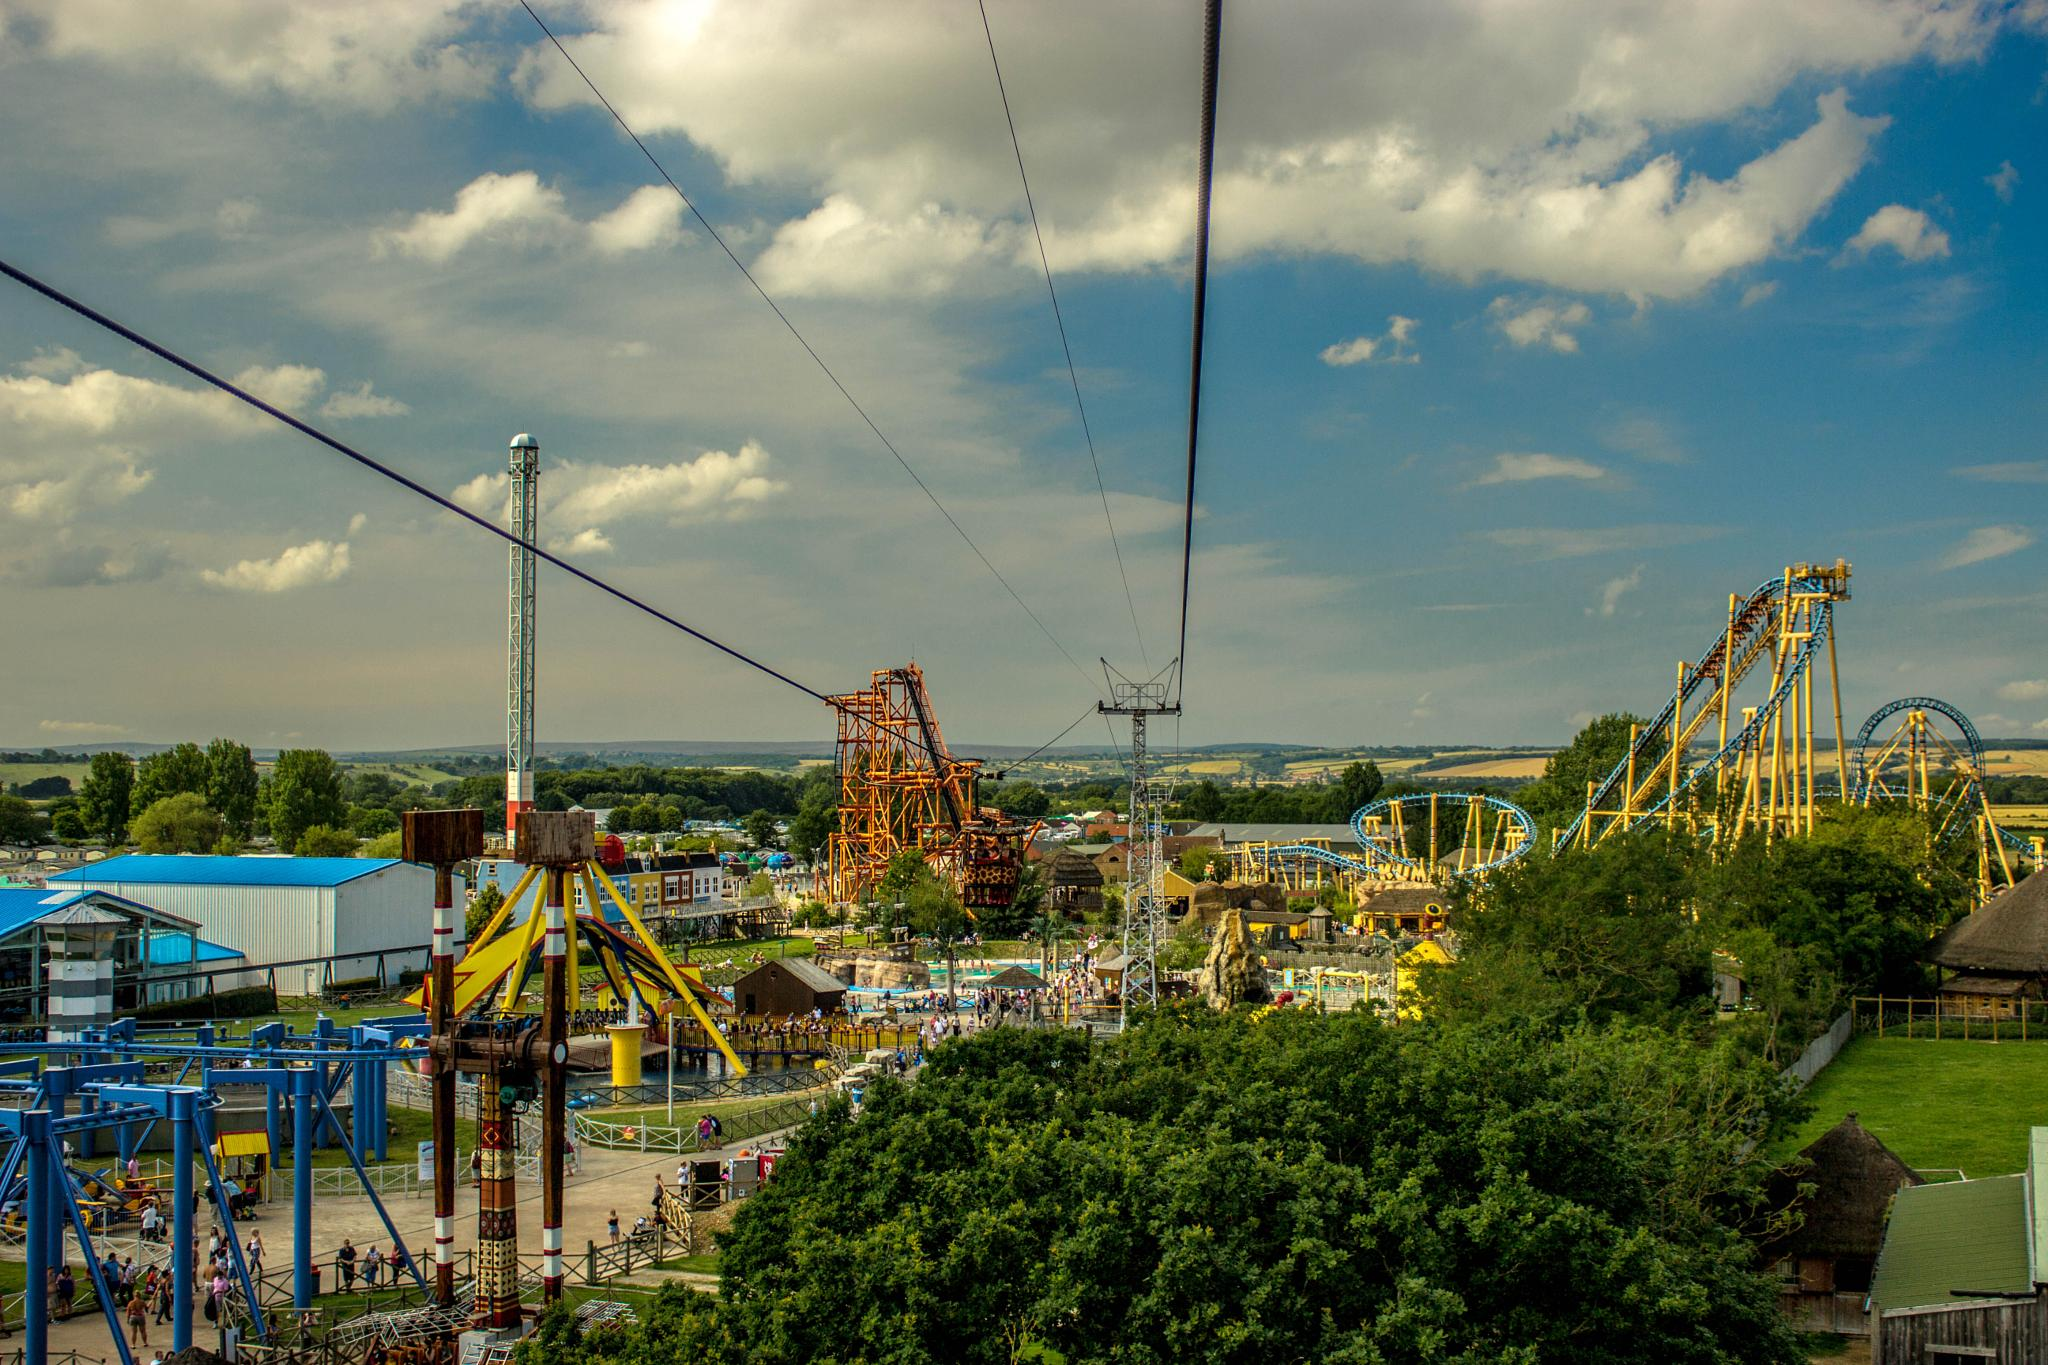 Nearly rare sunshine in U.K. theme park! by Xanthe Towler